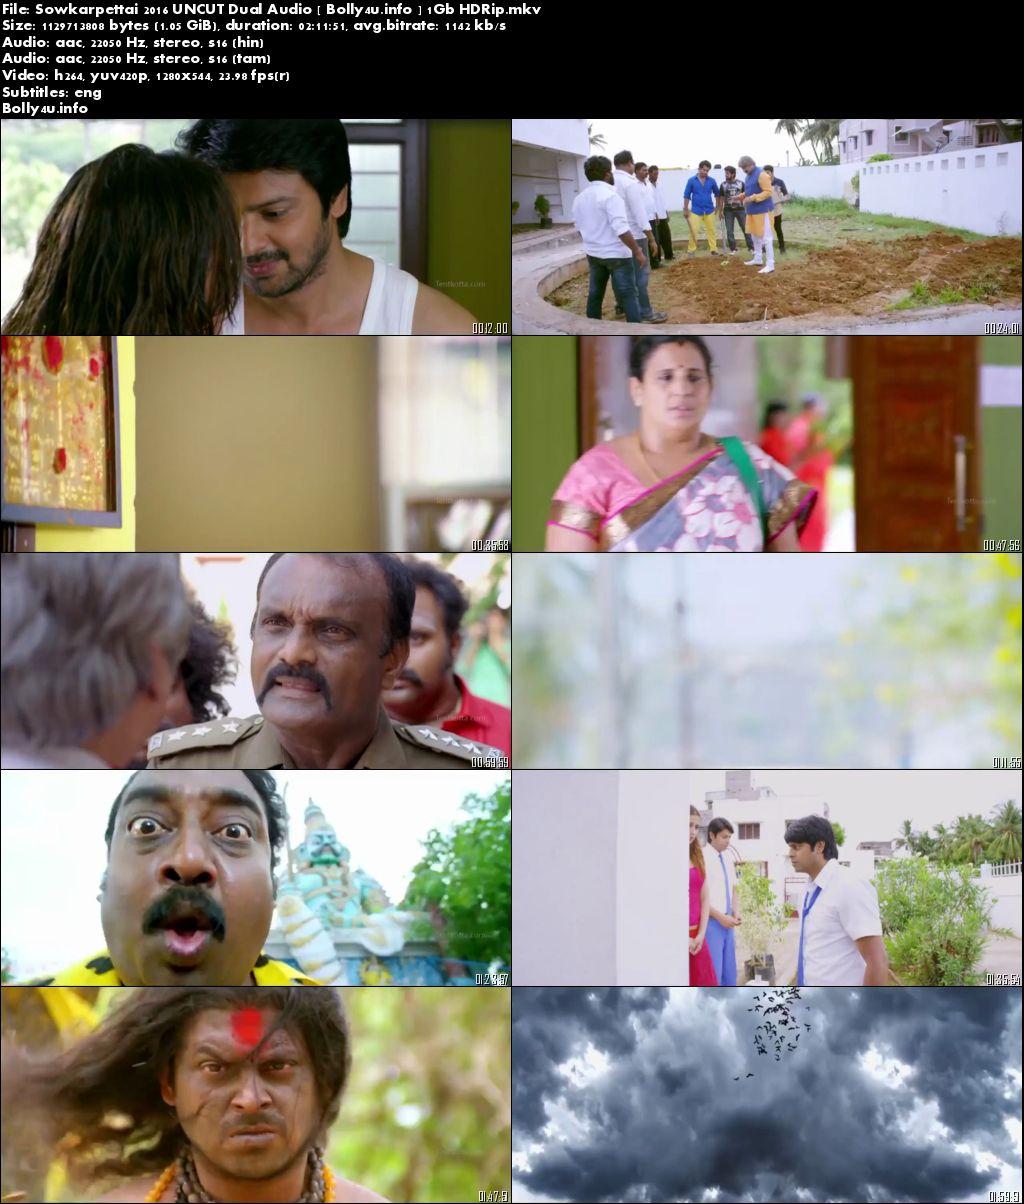 Screen Shoots of Sowkarpettai 2016 HDRip Download 400MB UNCUT Dual Audio 480p